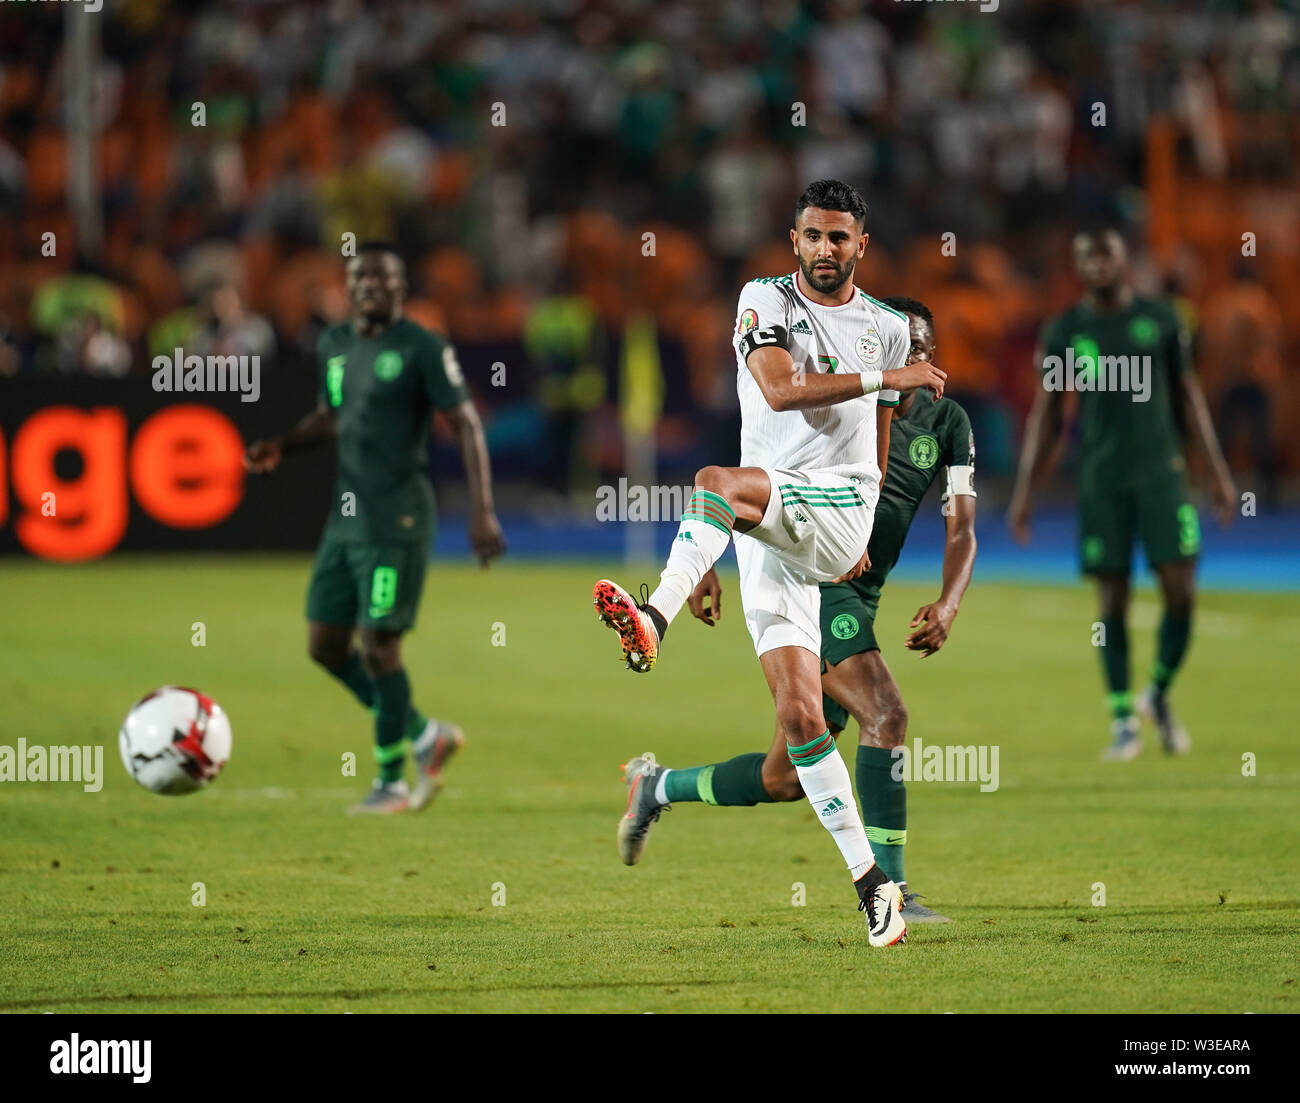 Cairo, Algeria, Egypt. 14th July, 2019. FRANCE OUT July 14, 2019: Riyad Karim Mahrez of Algeria during the 2019 African Cup of Nations match between Algeria and Nigeria at the Cairo International Stadium in Cairo, Egypt. Ulrik Pedersen/CSM/Alamy Live News - Stock Image